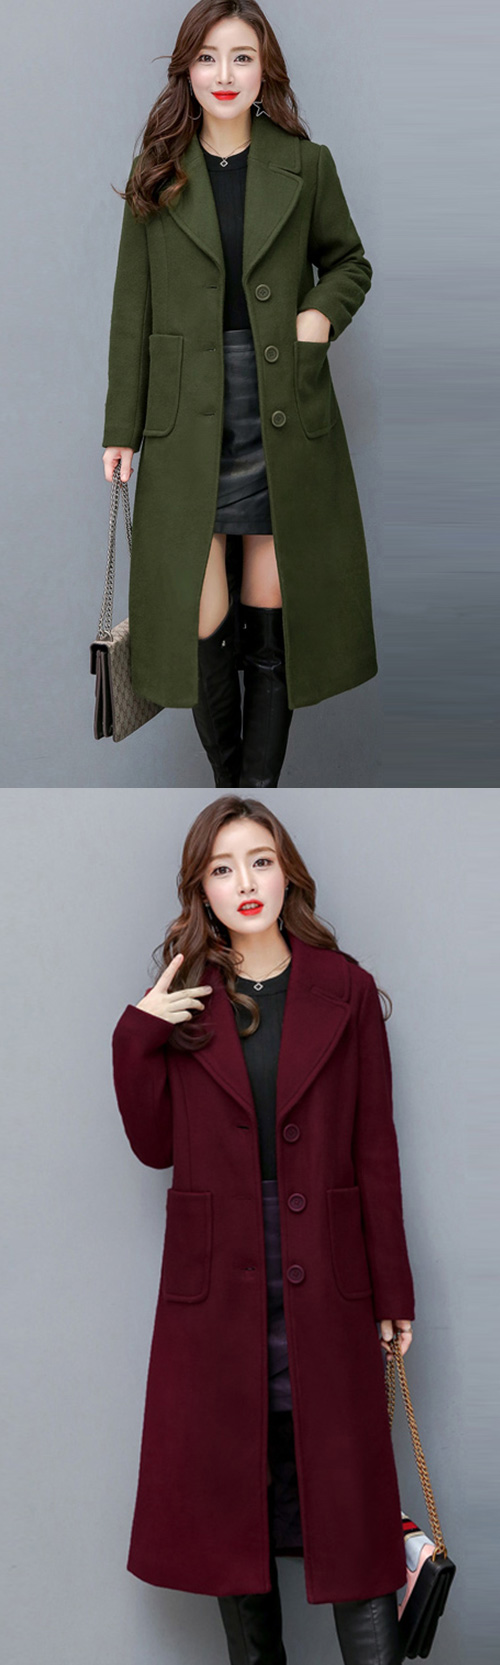 3b836d1ddf6e0 Women s Plus Size Going out Street chic Sophisticated Fall Winter Coat